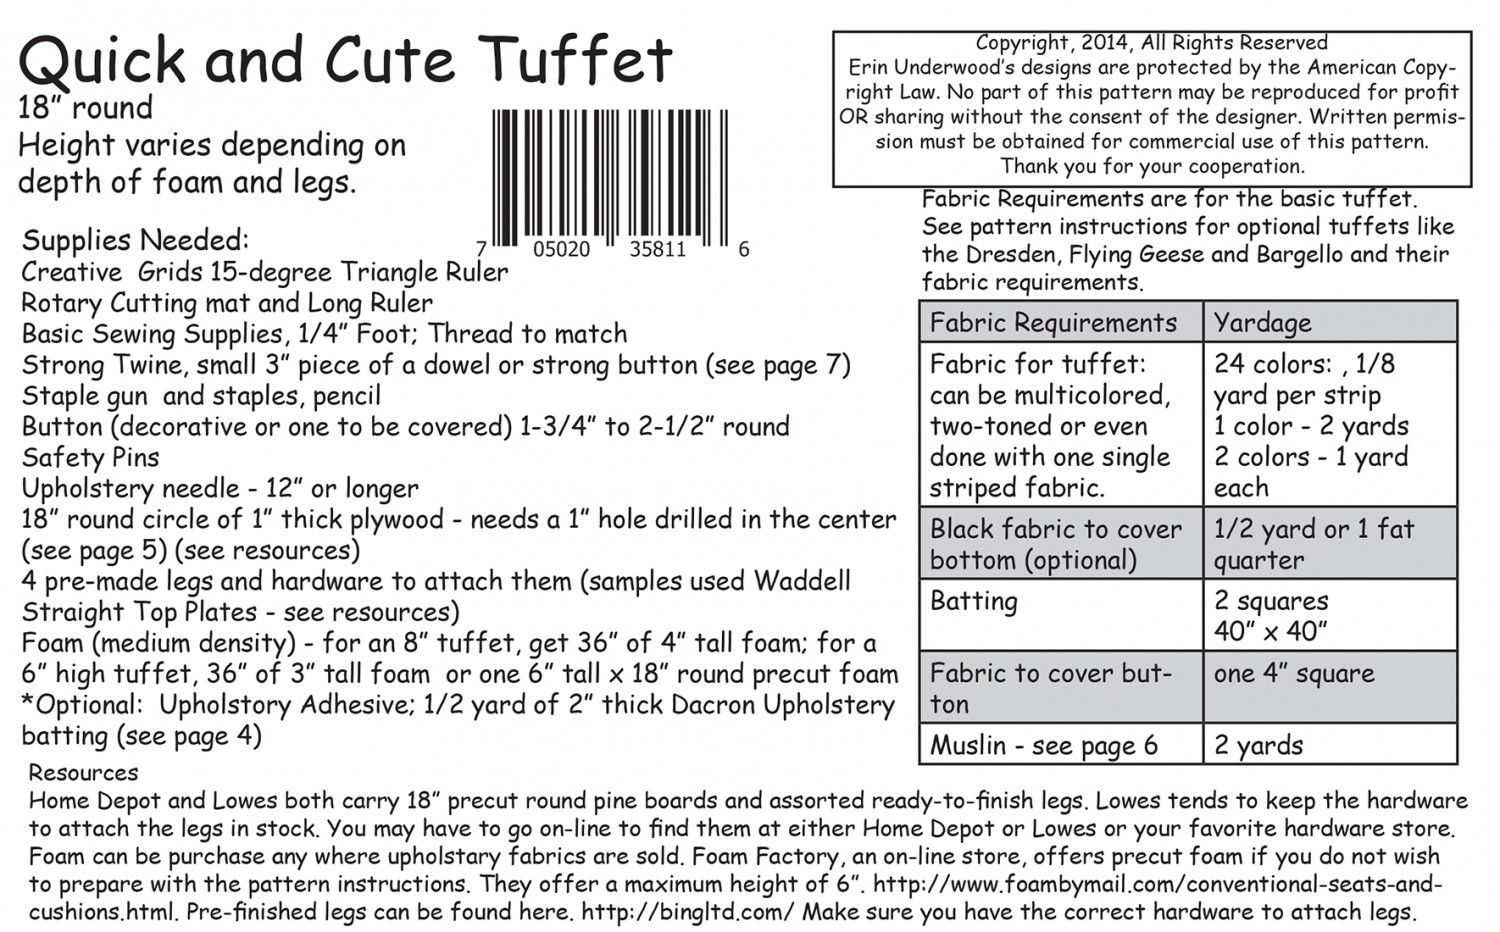 cfe0d0d844 18in round - Height varies. Fast and fun tuffets are truly quick and cute!  They come together in one day with the Creative Grids 15-Degree Triangle  Ruler!